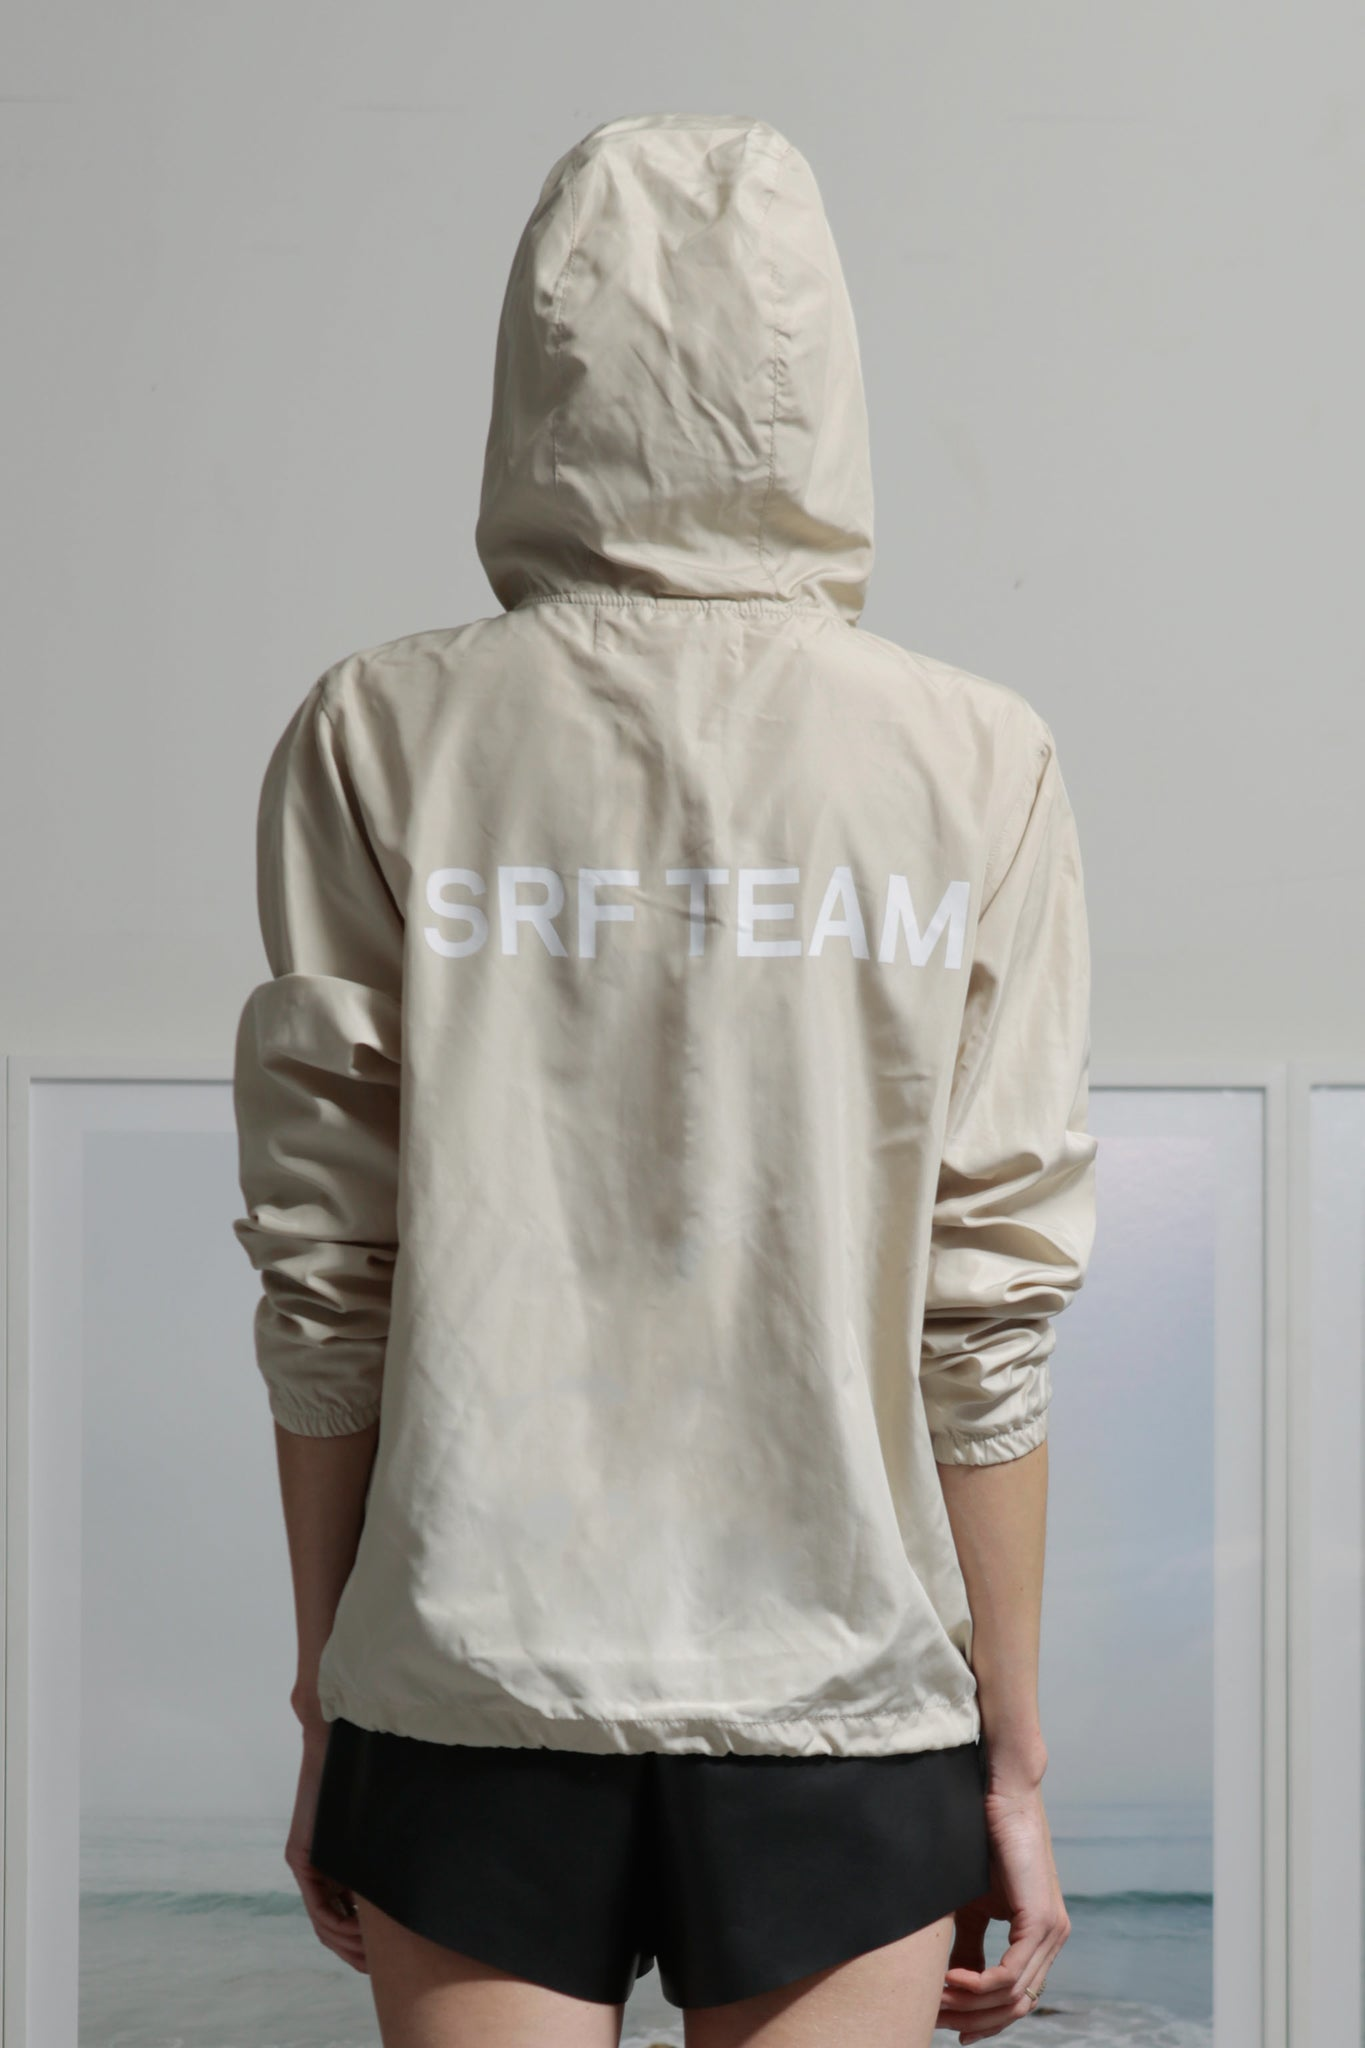 SRF TEAM WINDBREAKER - SAND - SIZES XS/S/M/L